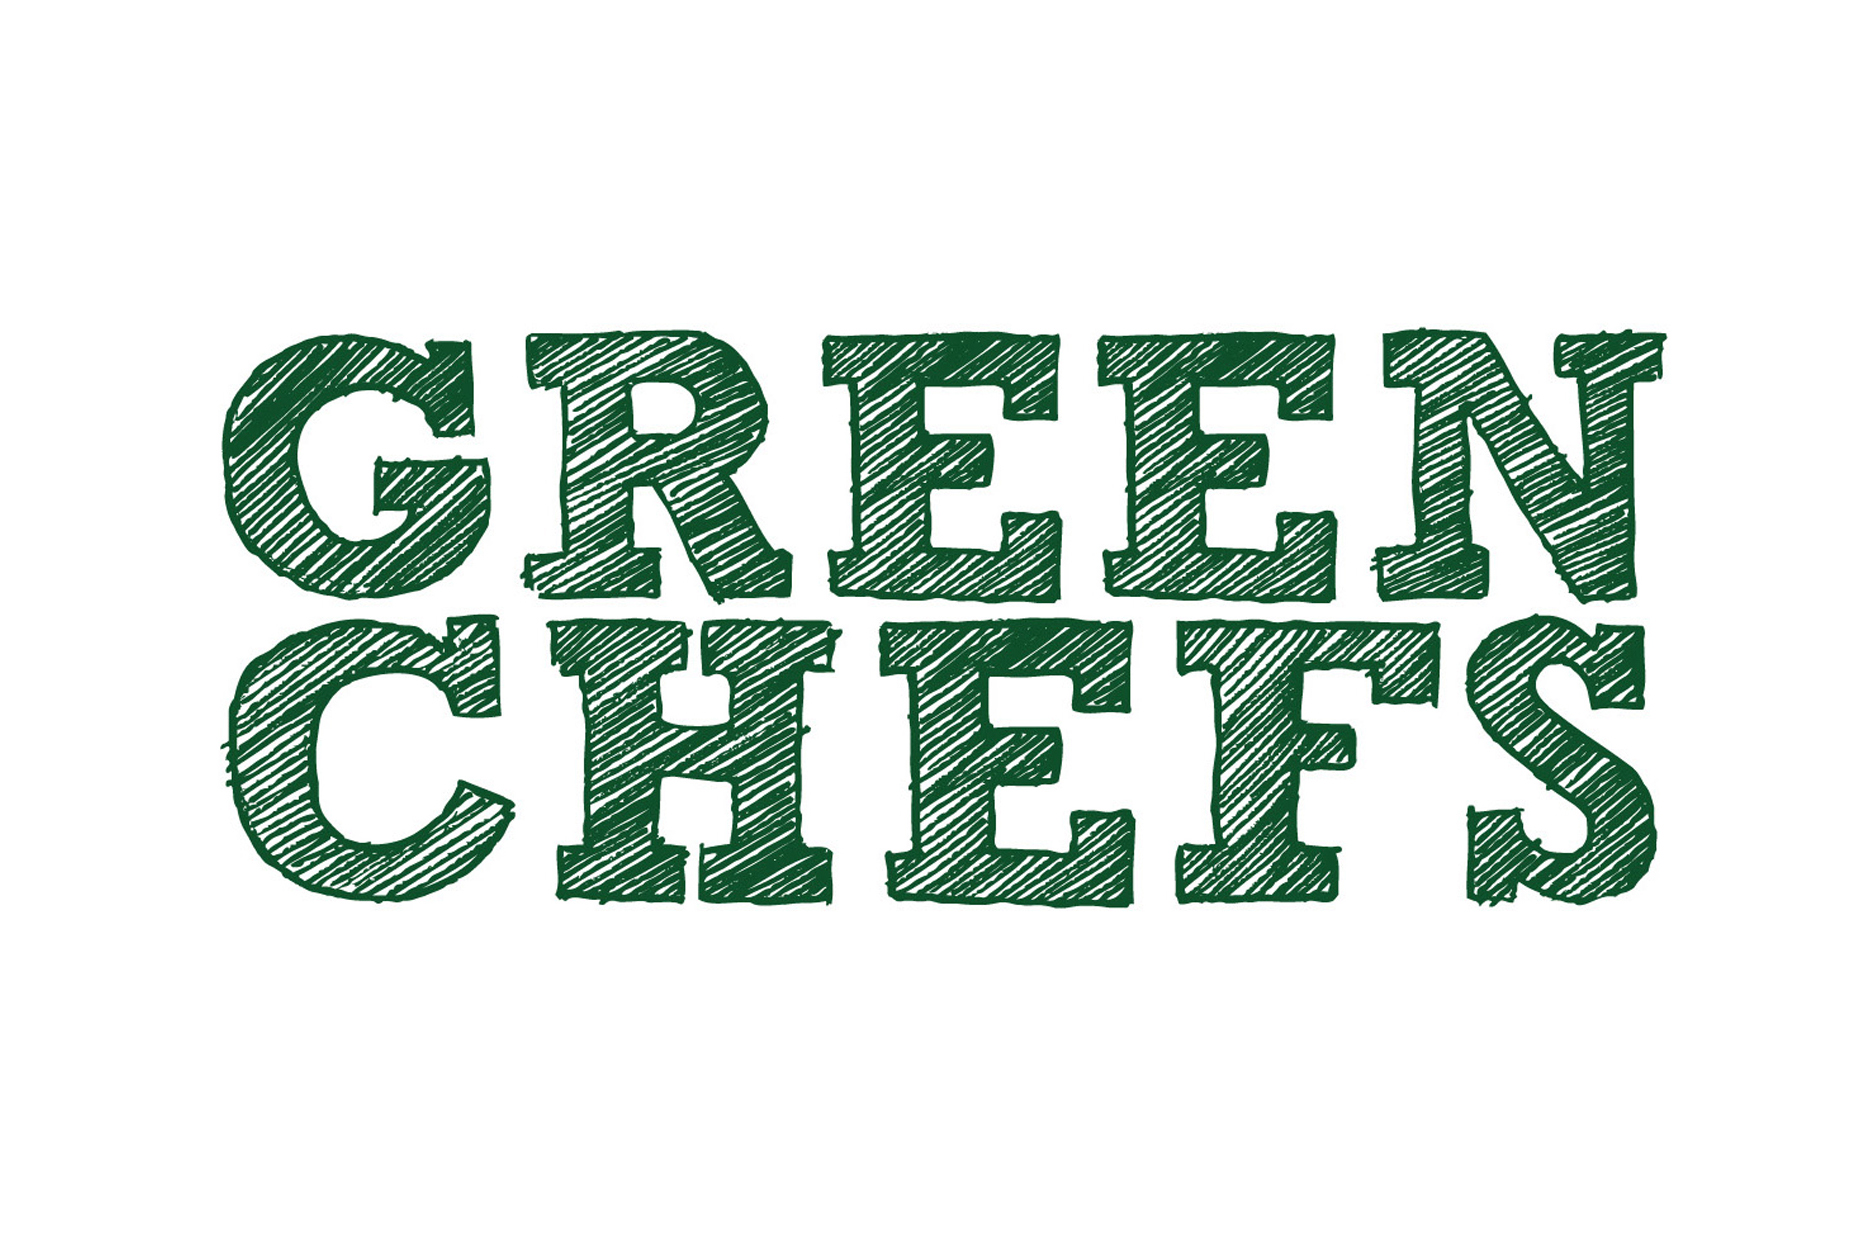 Green Chefs: Fairness und Verantwortung in der Gastronomie